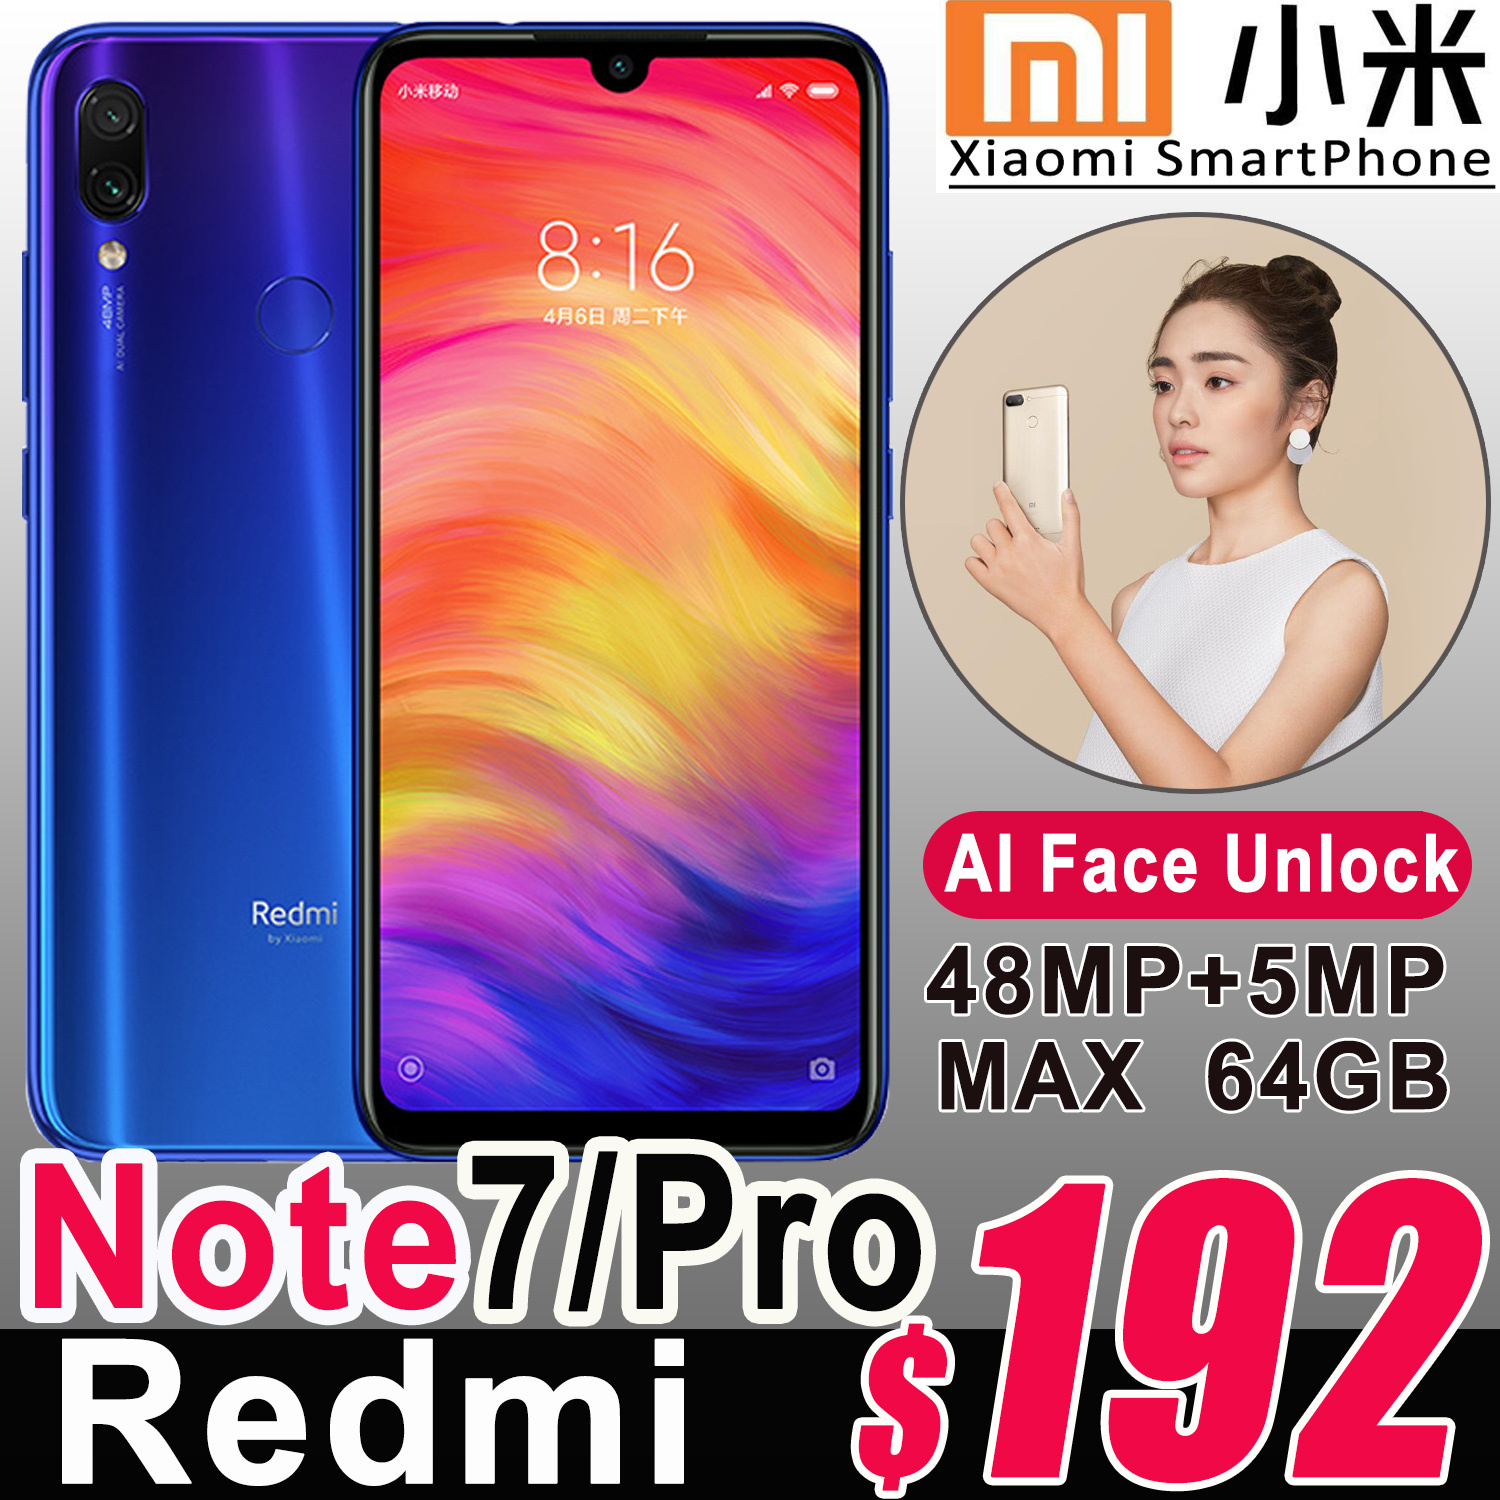 2019 Xiaomi Redmi Note 7/Pro 6 3inch GPS Smartphone Android OS Type-C Sony  Camera 4000mAh